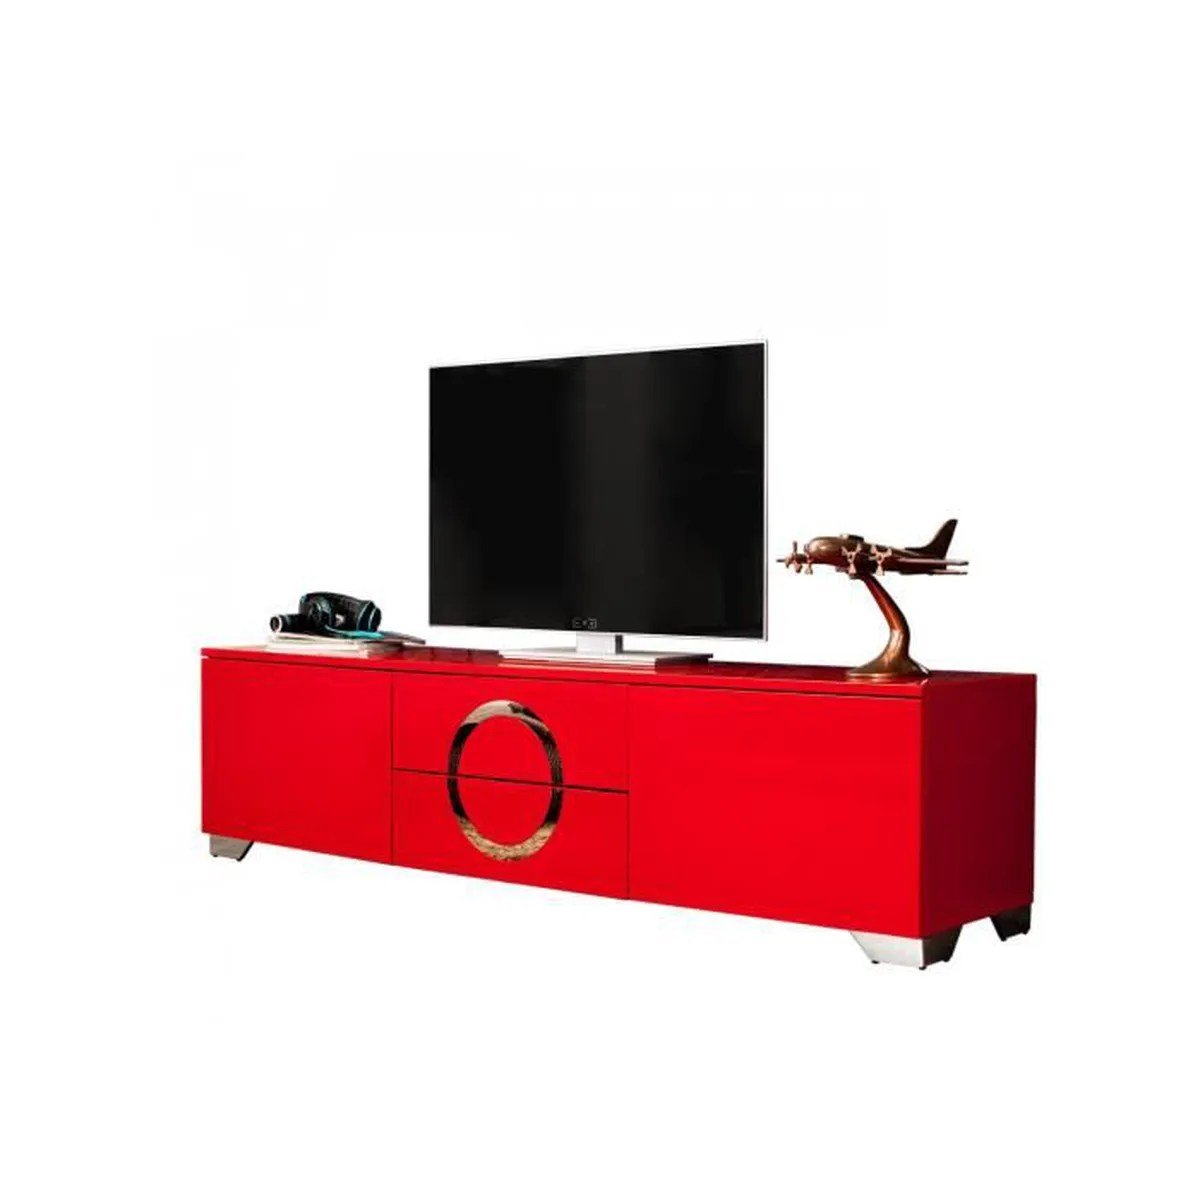 Meuble Tv Rouge Meuble Tv Design 180 Cm En Mdf Coloris Rouge Brillant Rouge